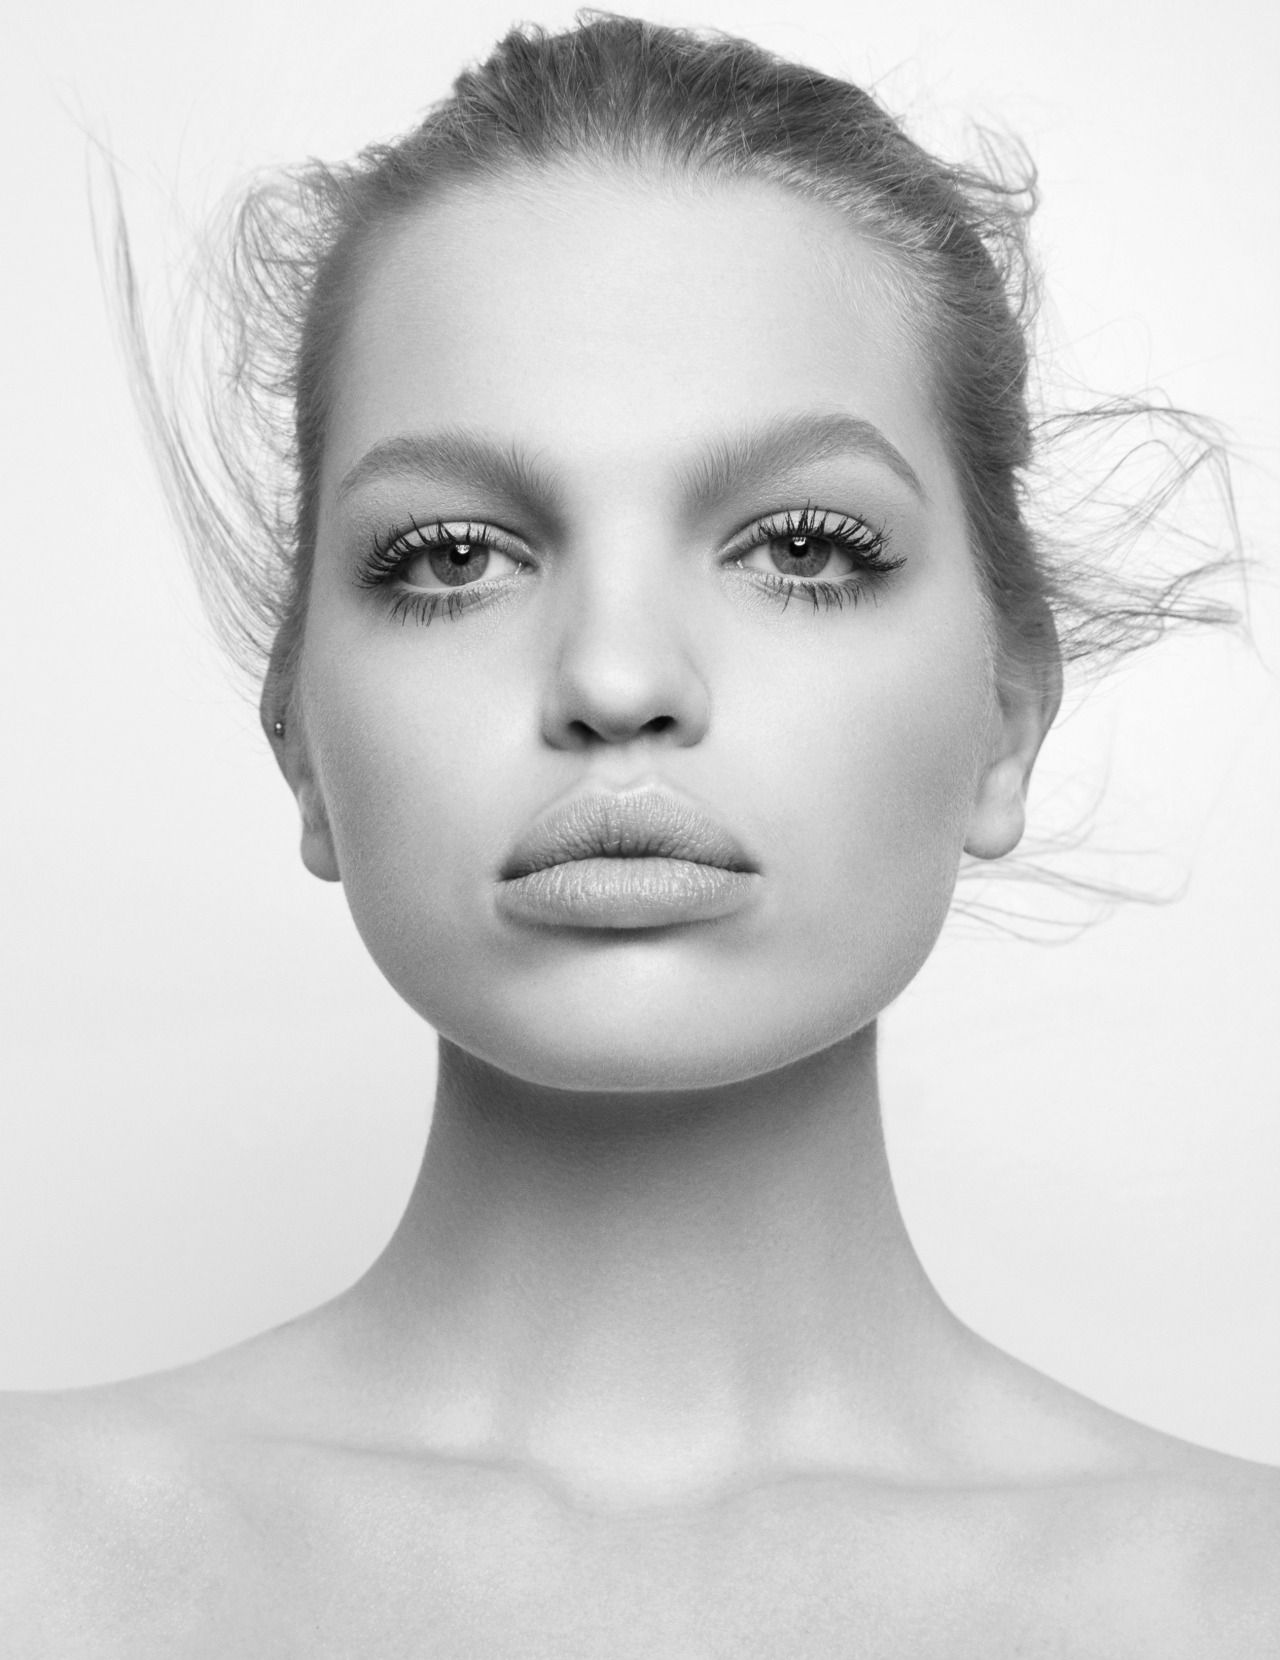 """Daphne Groeneveld in """"Independence Day"""" for Vogue Thailand, March 2016      Photographed by Natth Jaturapahu"""